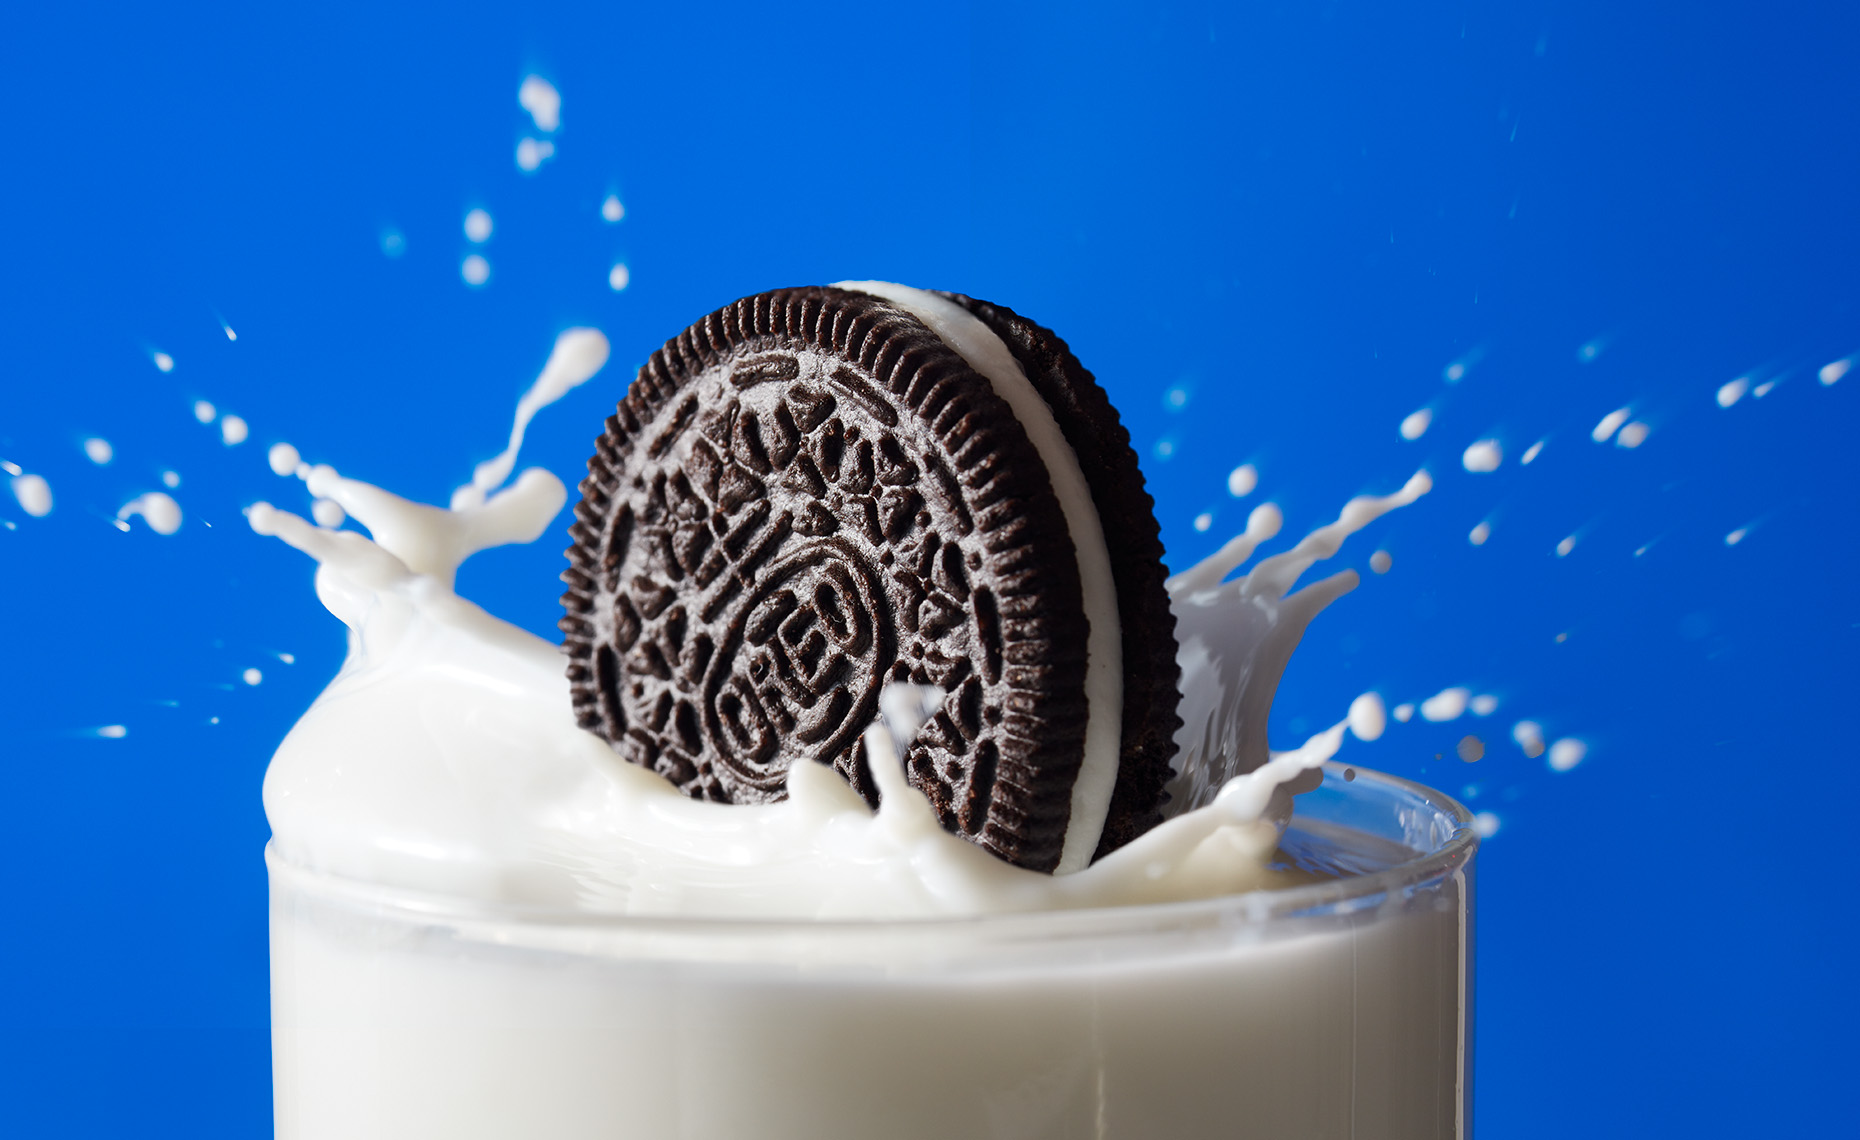 Oreo Cookie Splash